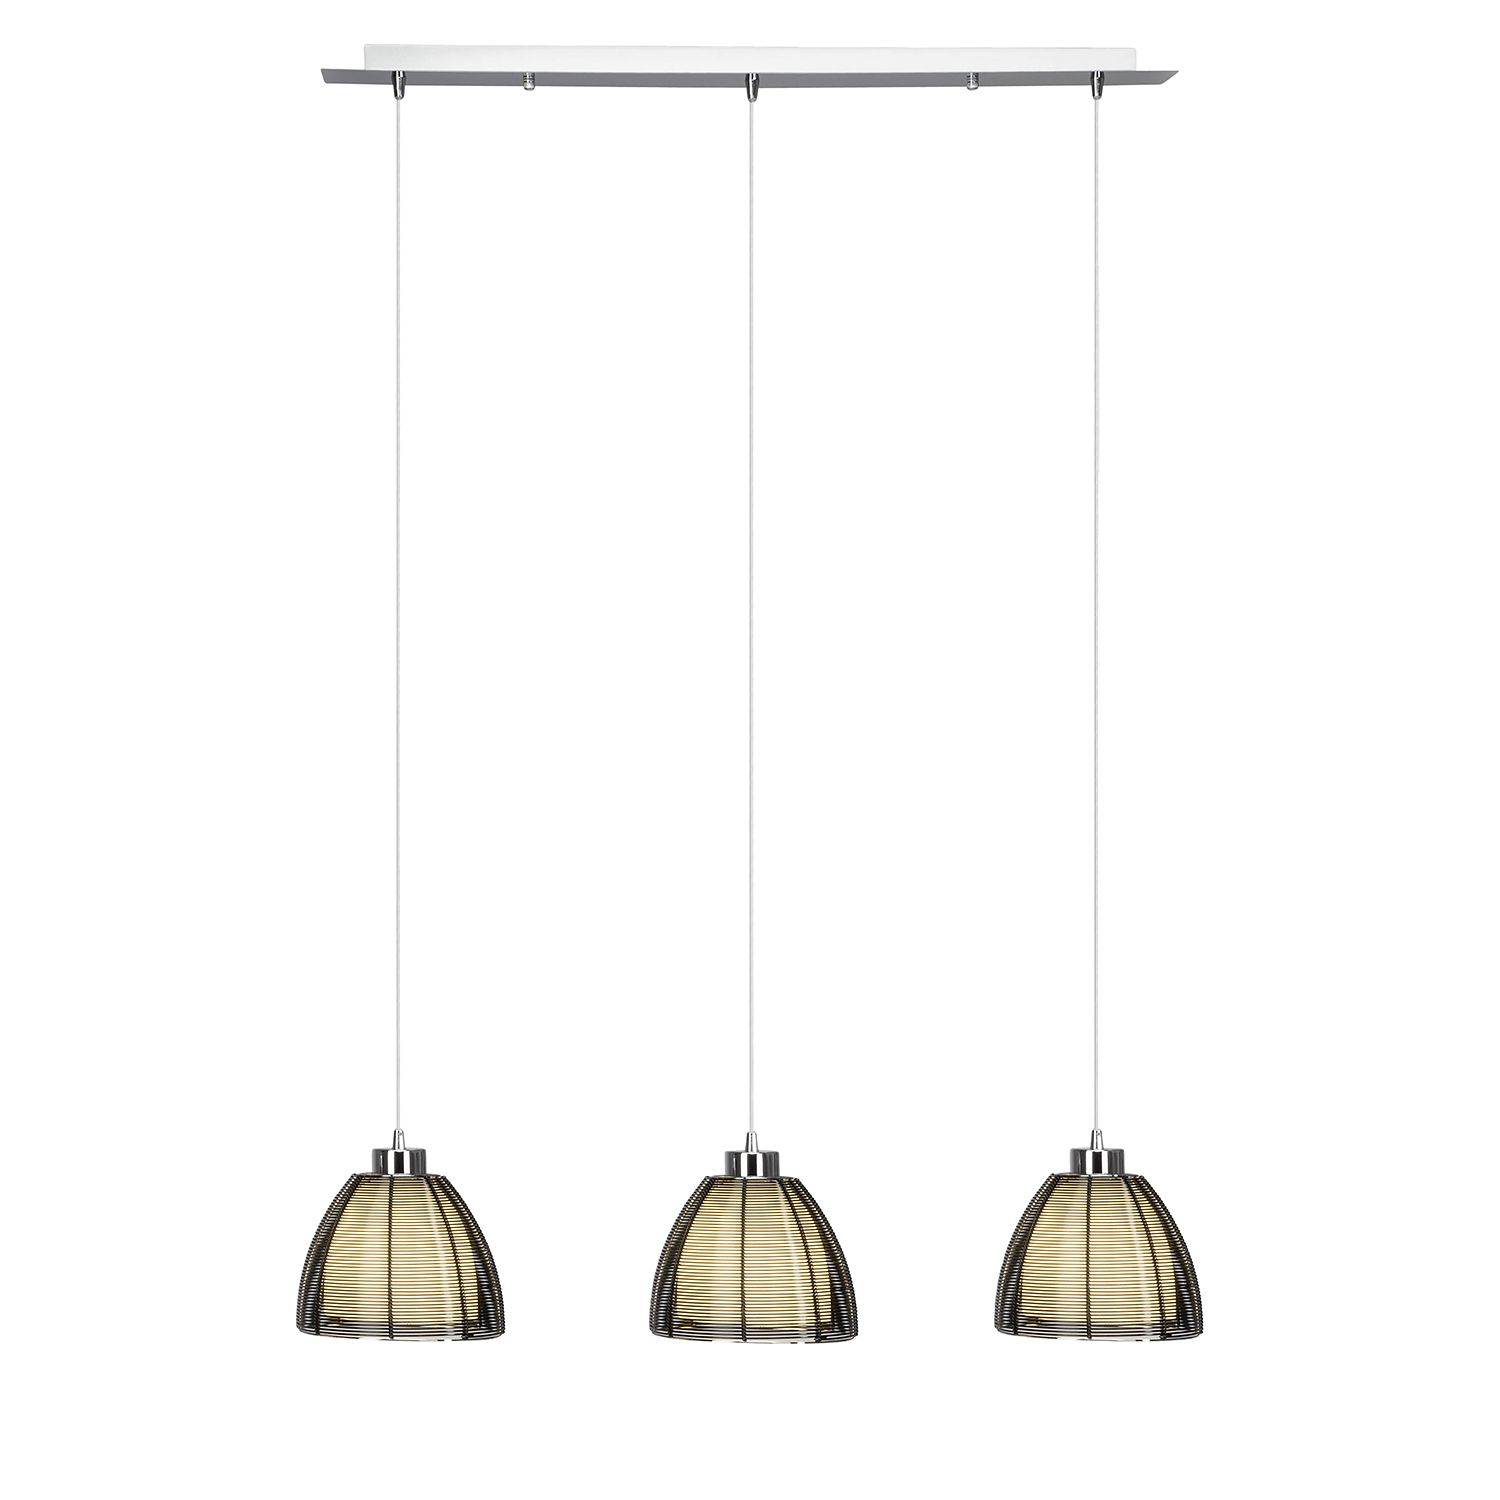 EEK A++, Suspension Relax II- Verre / Fer - 3 ampoules - Noir, Brilliant Living